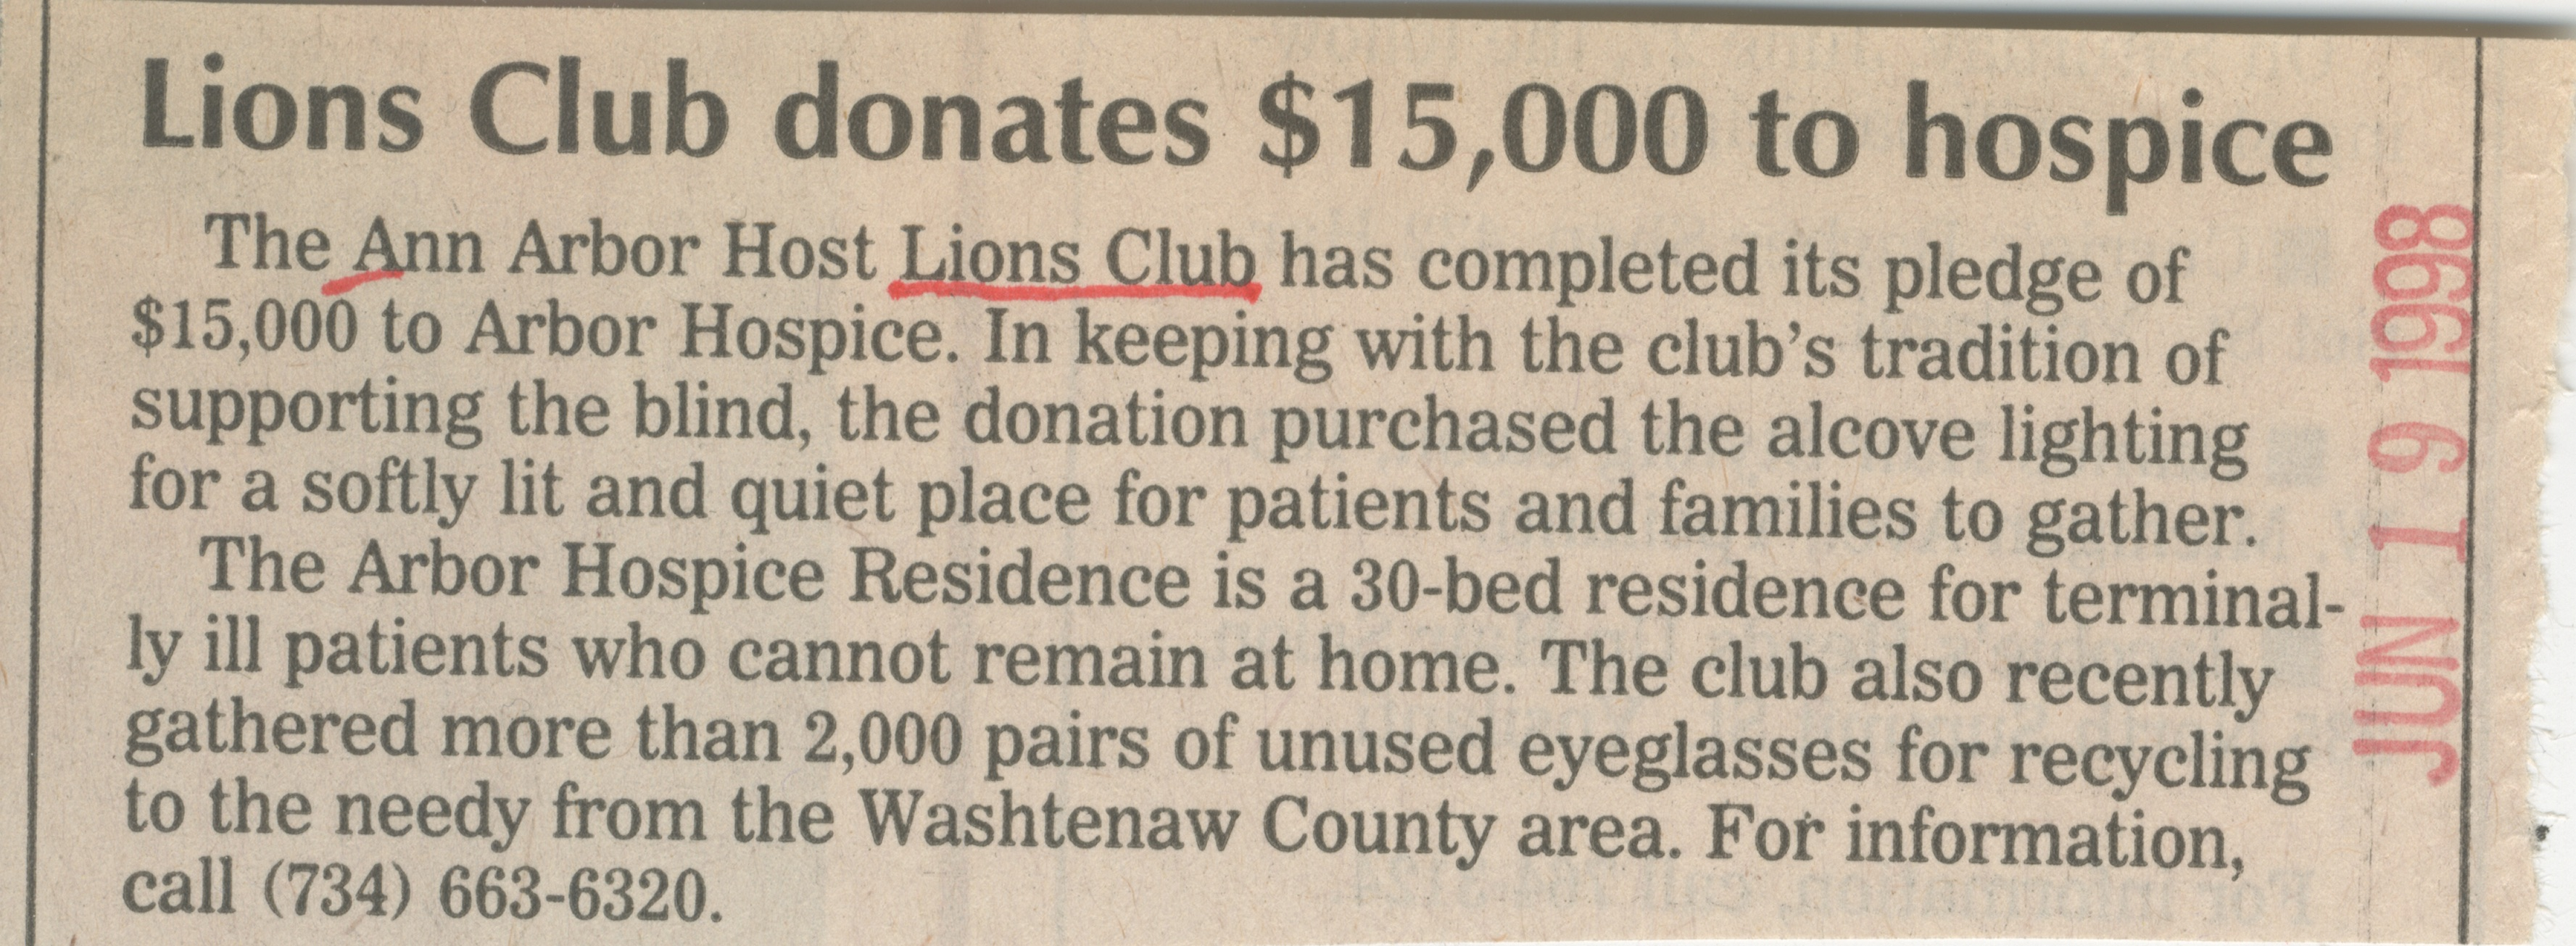 Lions Club Donates $15,000 To Hospice image